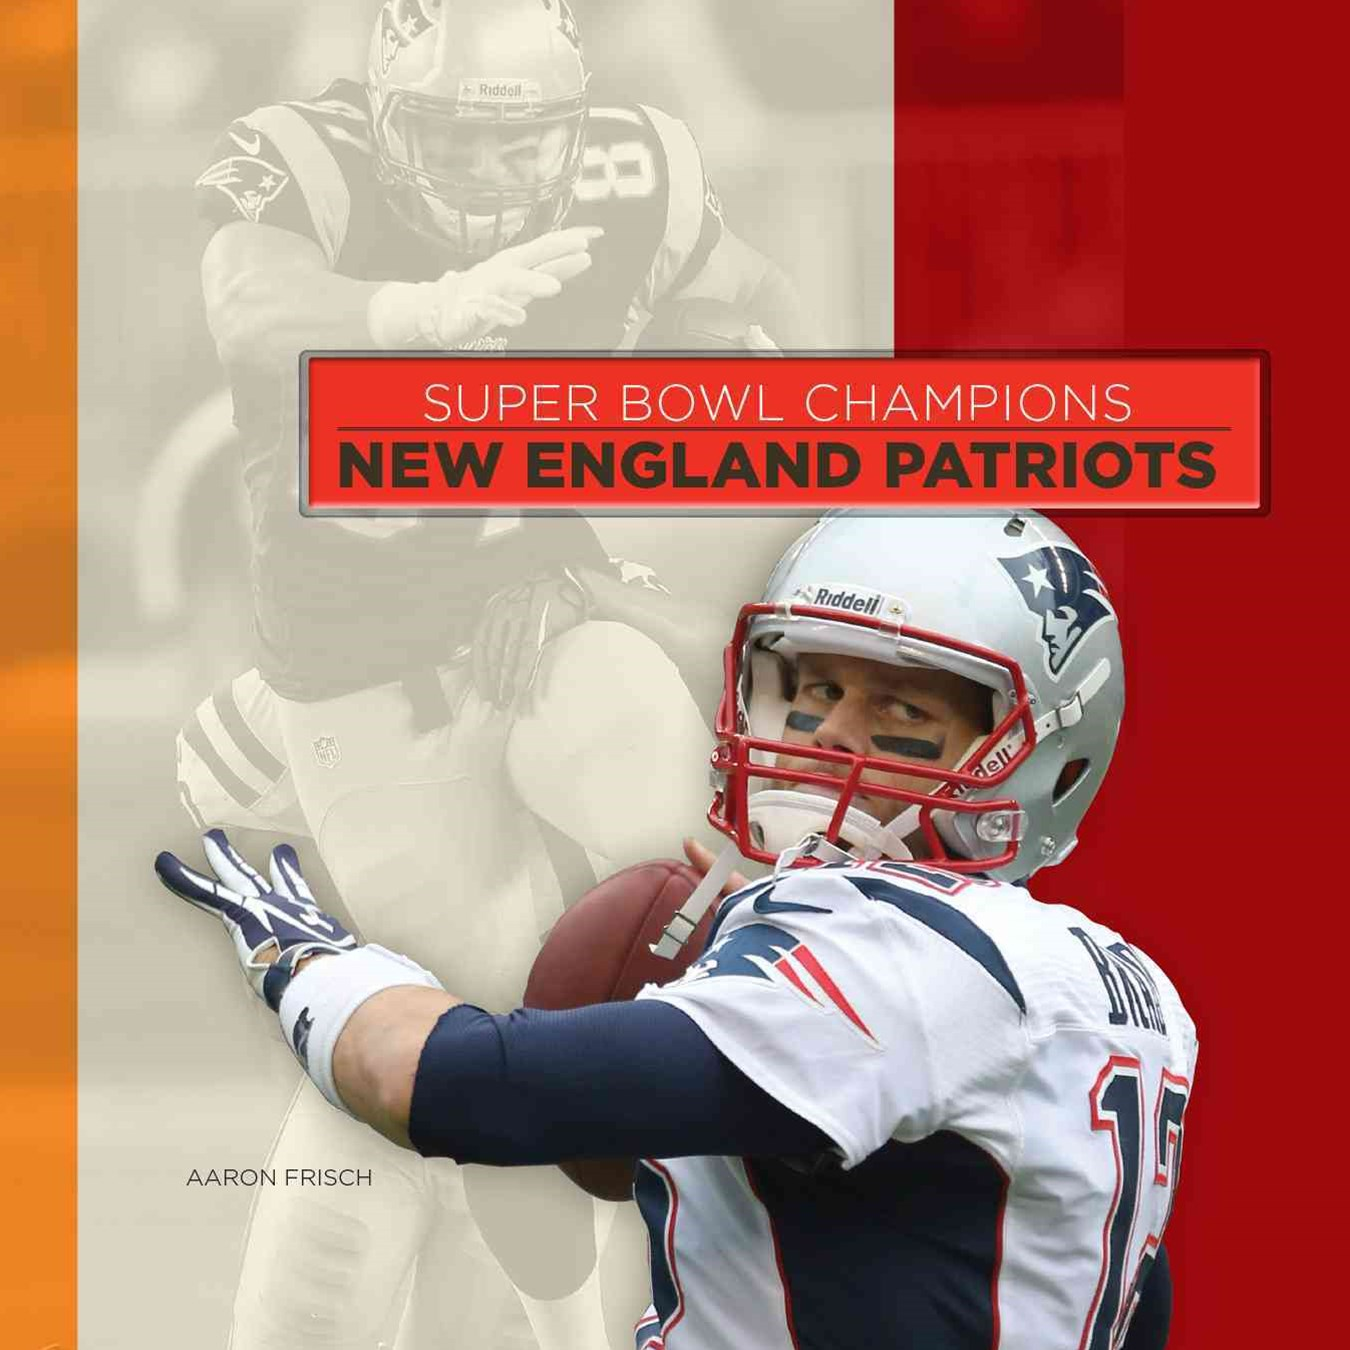 Super Bowl Champions: New England Patriots